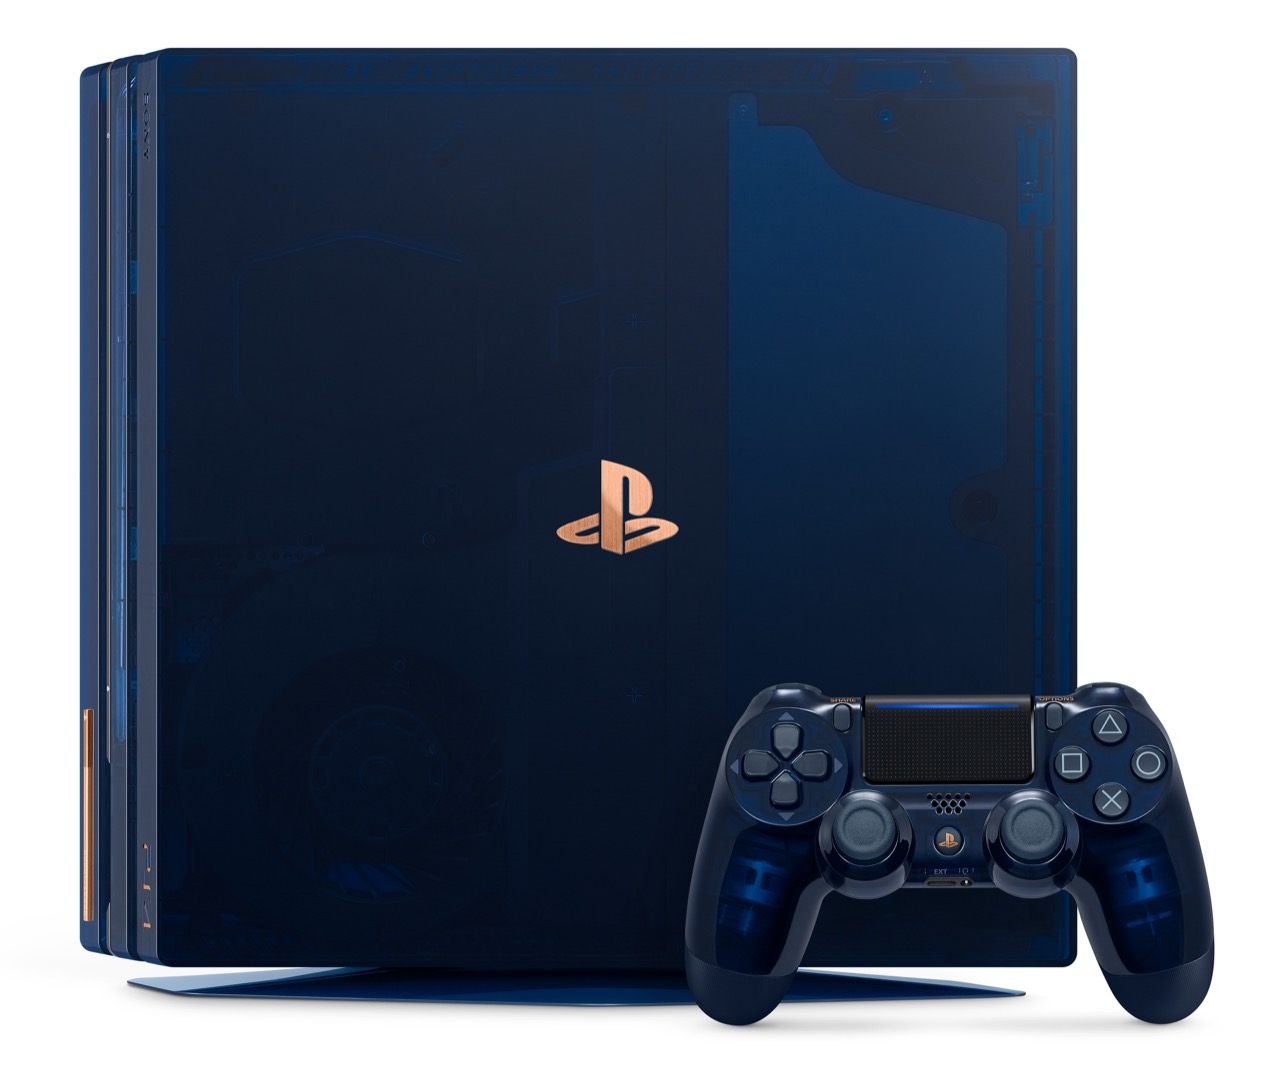 sony launches 500 million limited edition ps4 pro to. Black Bedroom Furniture Sets. Home Design Ideas